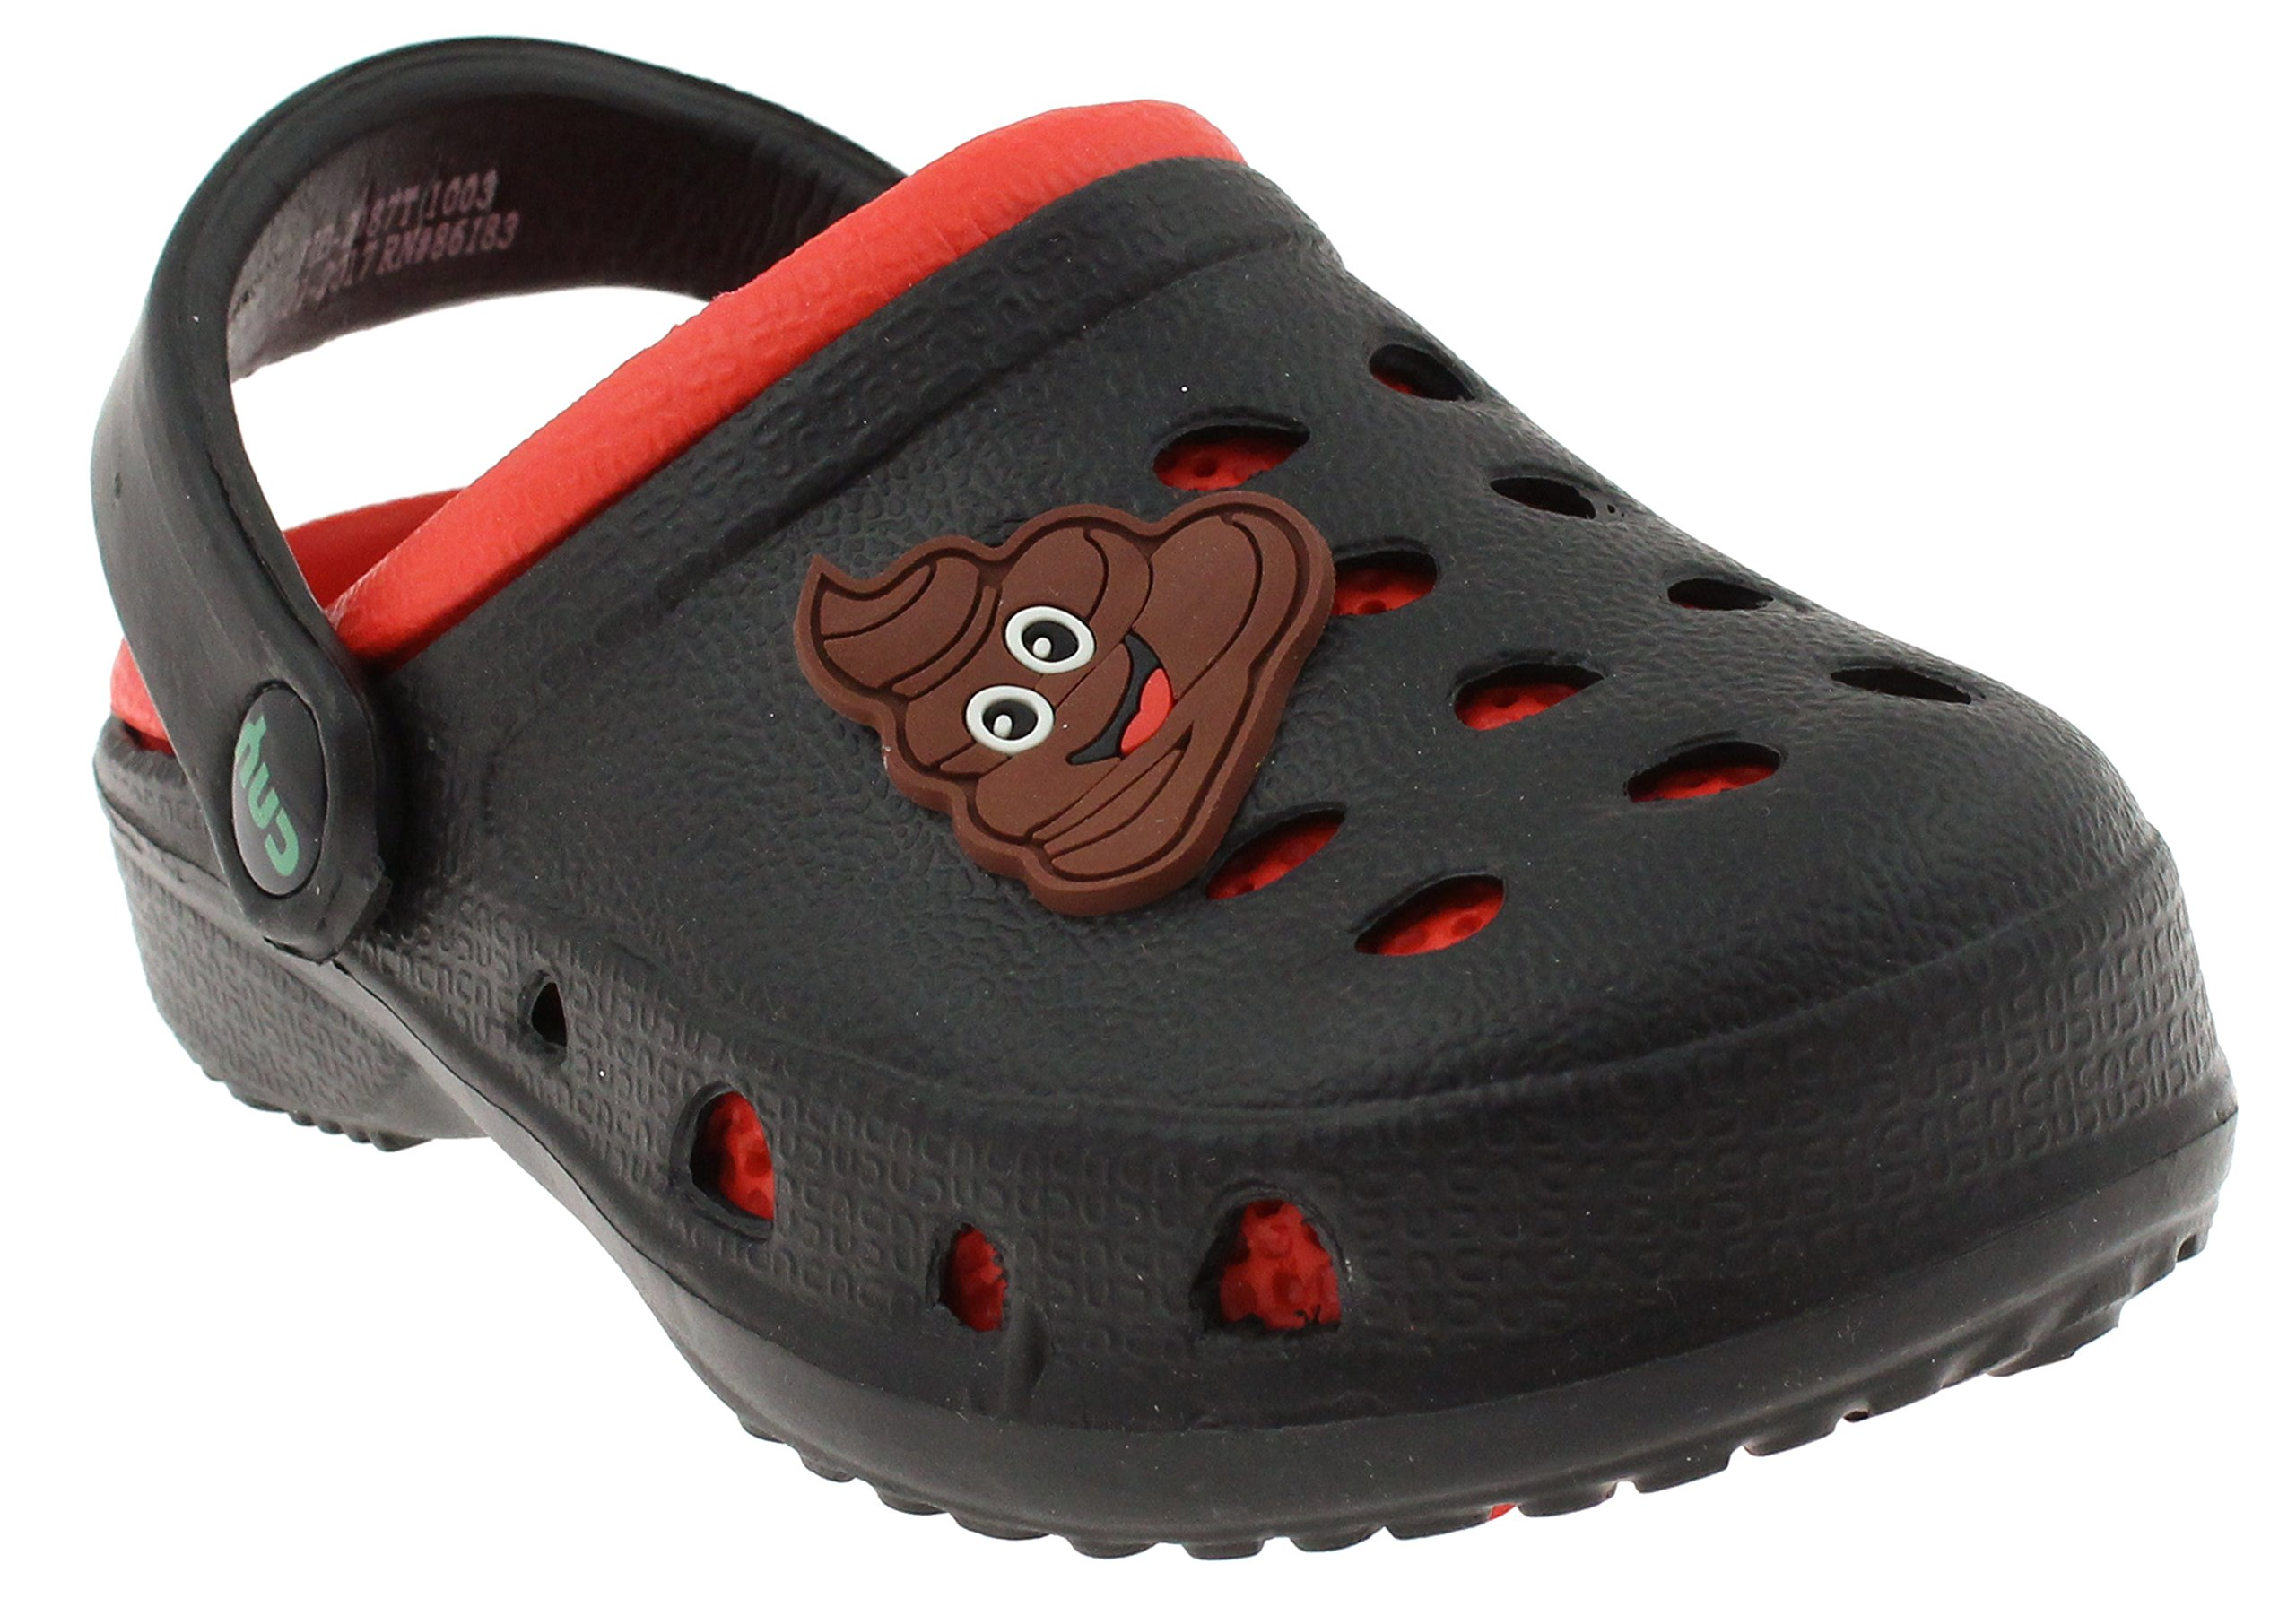 Capelli New York Toddler Clogs